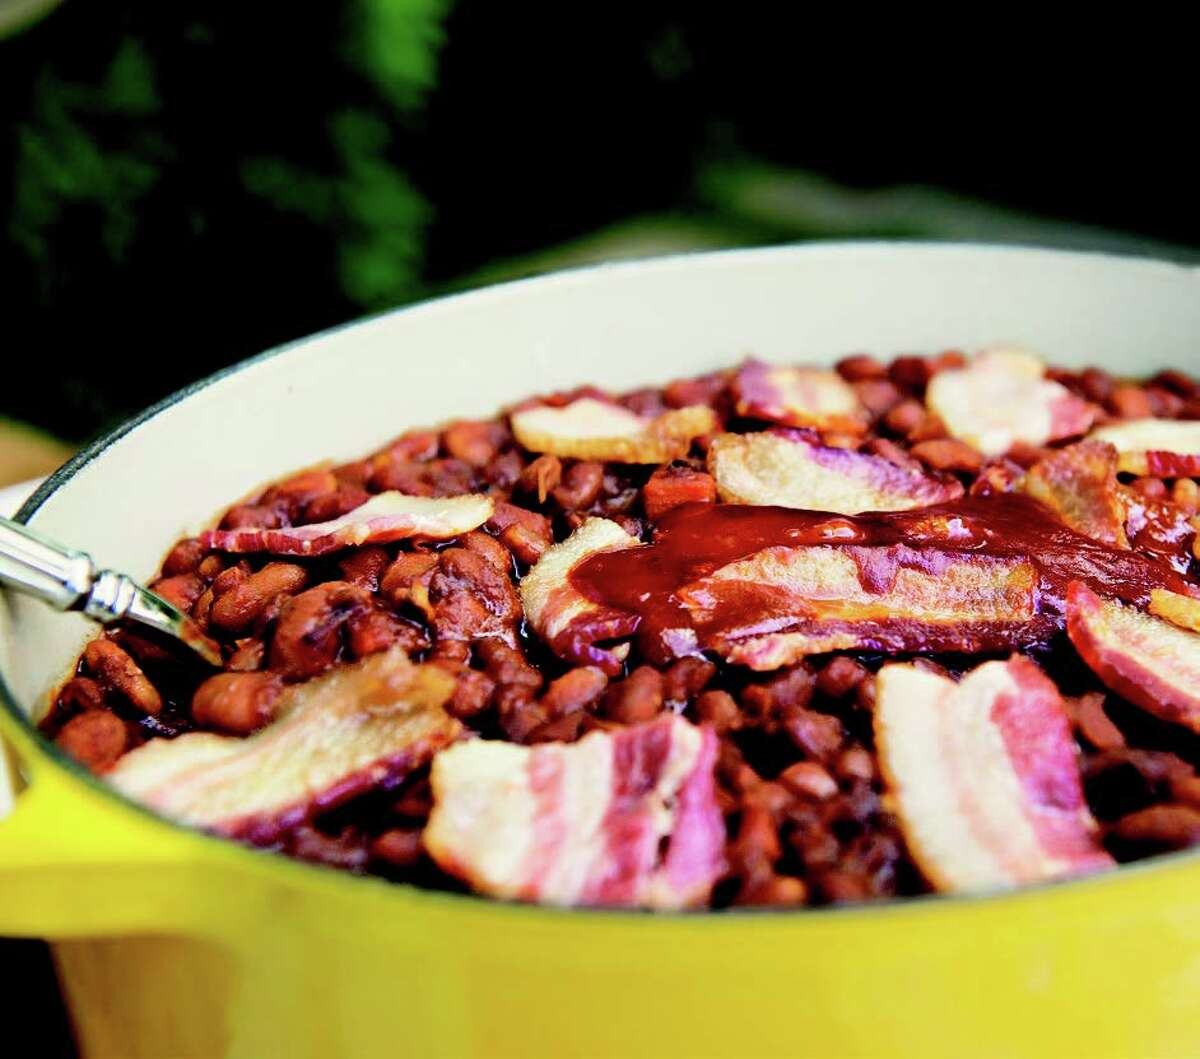 Campfire Beans from the Texas Food Bible